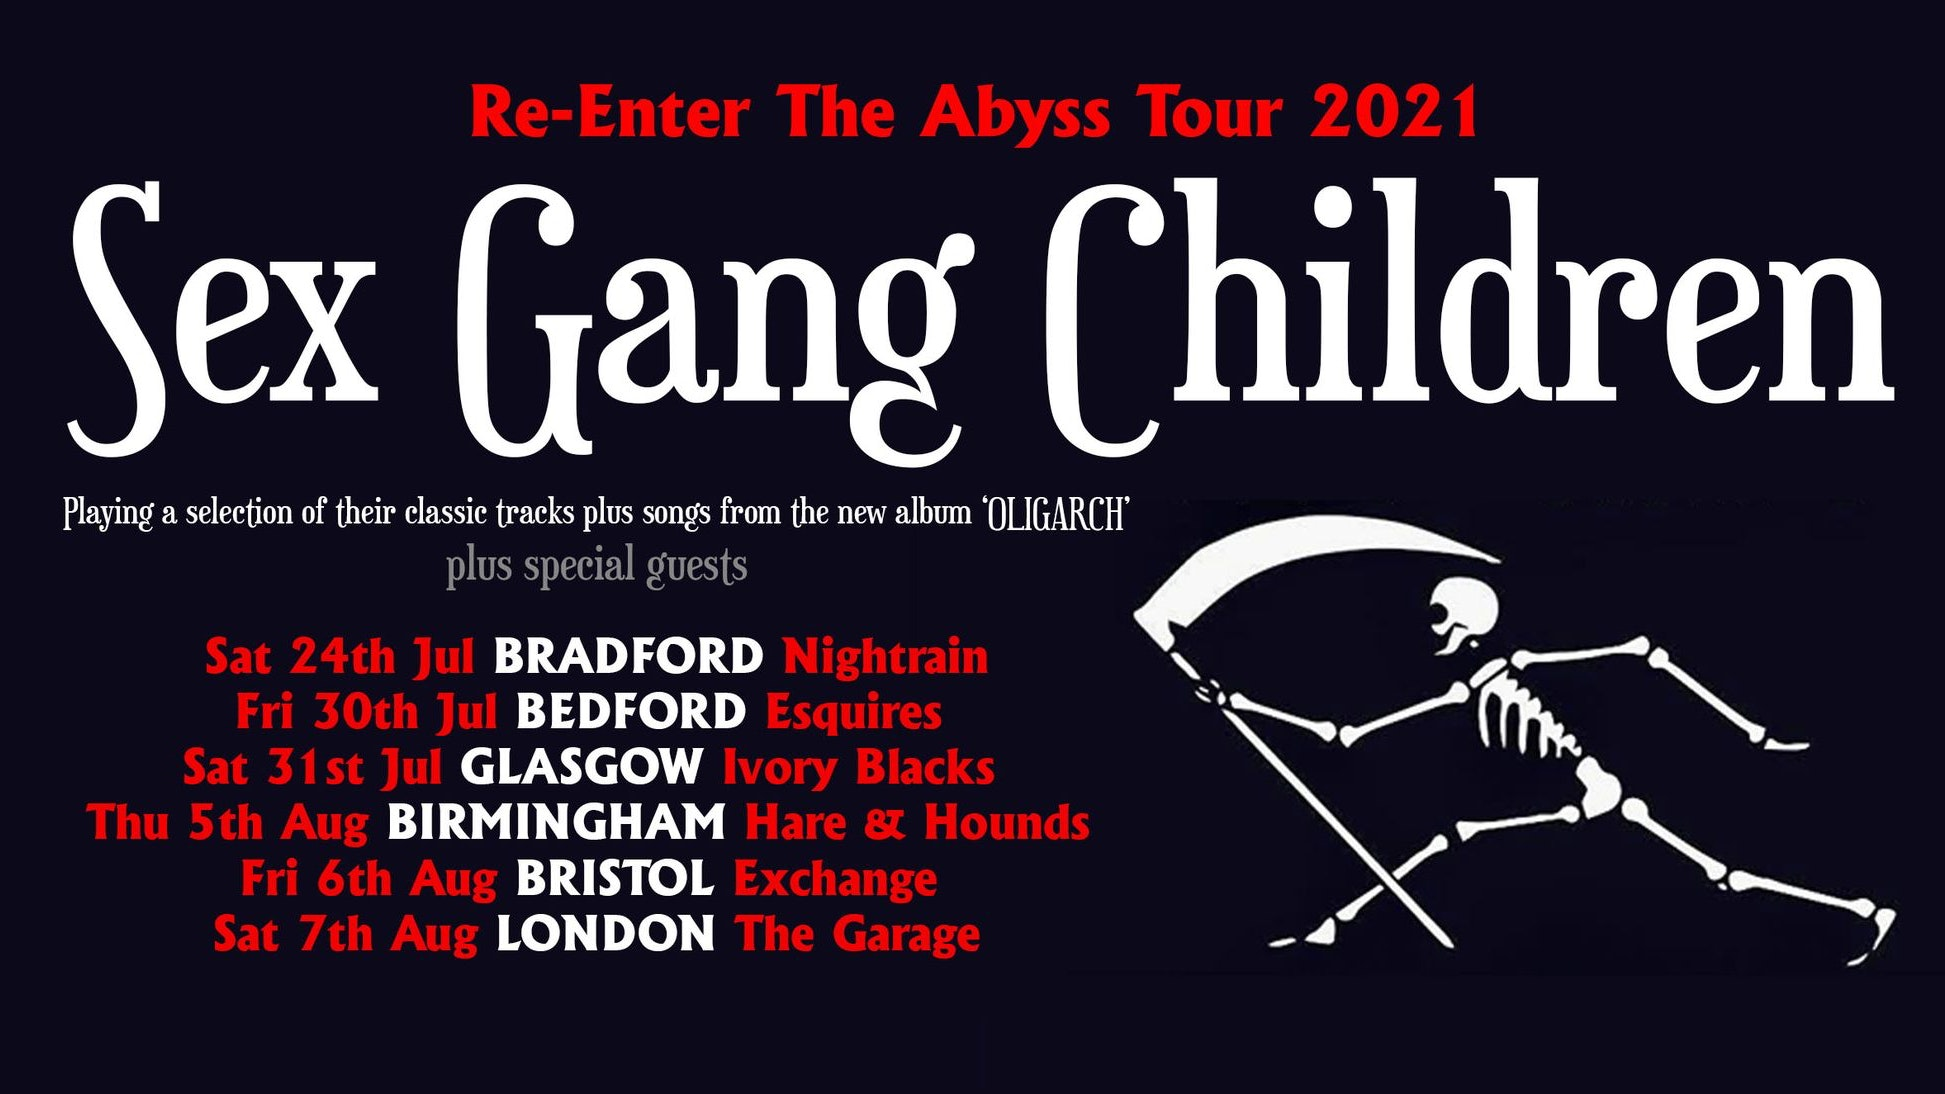 Sex Gang Children Re-Enter The Abyss Tour 2021 – Bedford